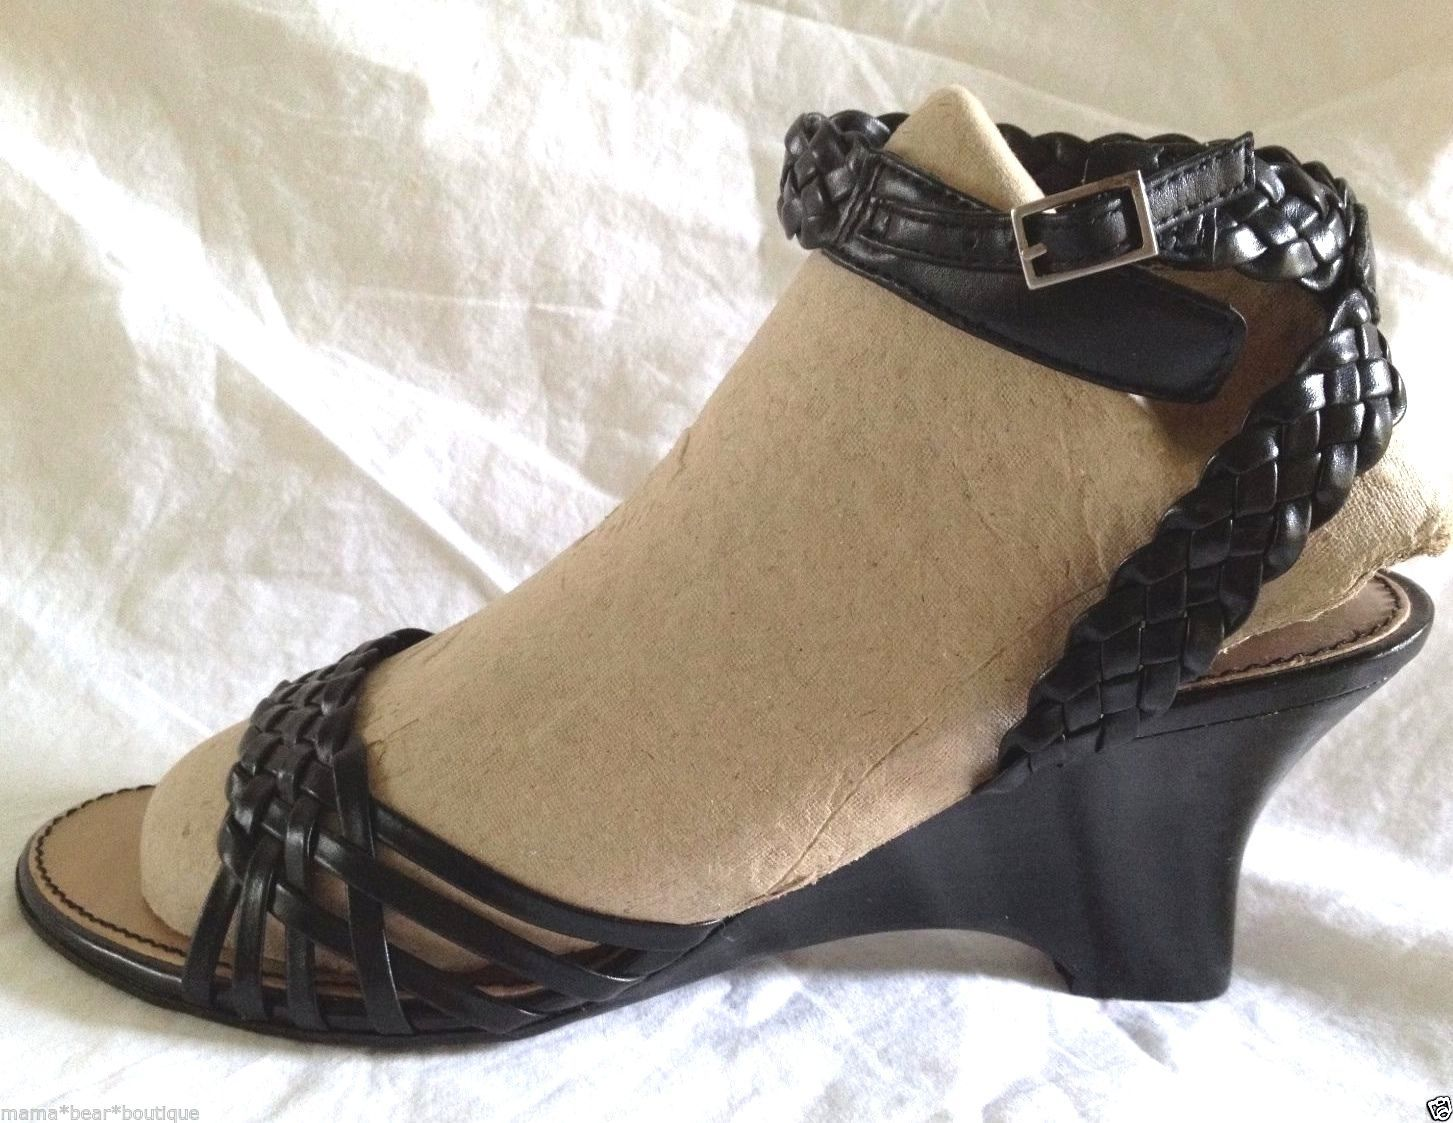 7aac314c00 Etienne Aigner Black Leather Wedge Sandals Women Size 7.5 - $29.69